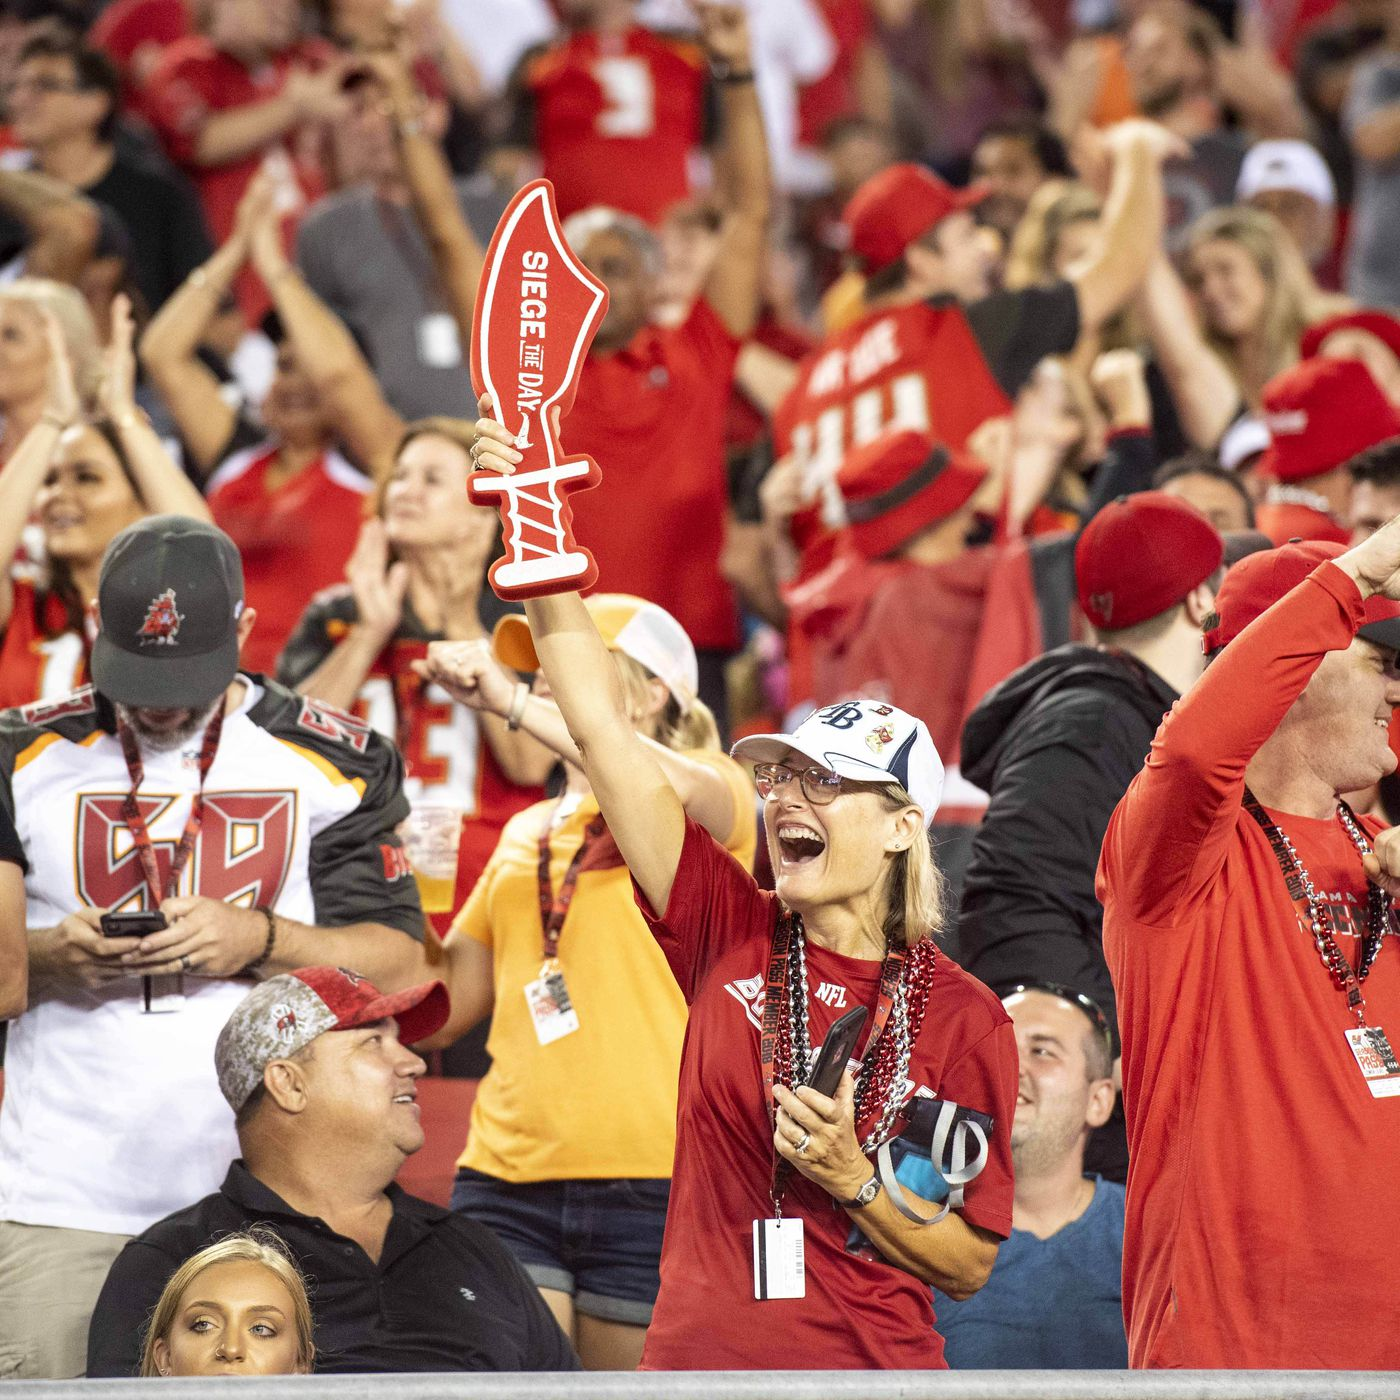 low priced 81ce0 8a004 Jacksonville Jaguars vs. Tampa Bay Buccaneers preseason game ...